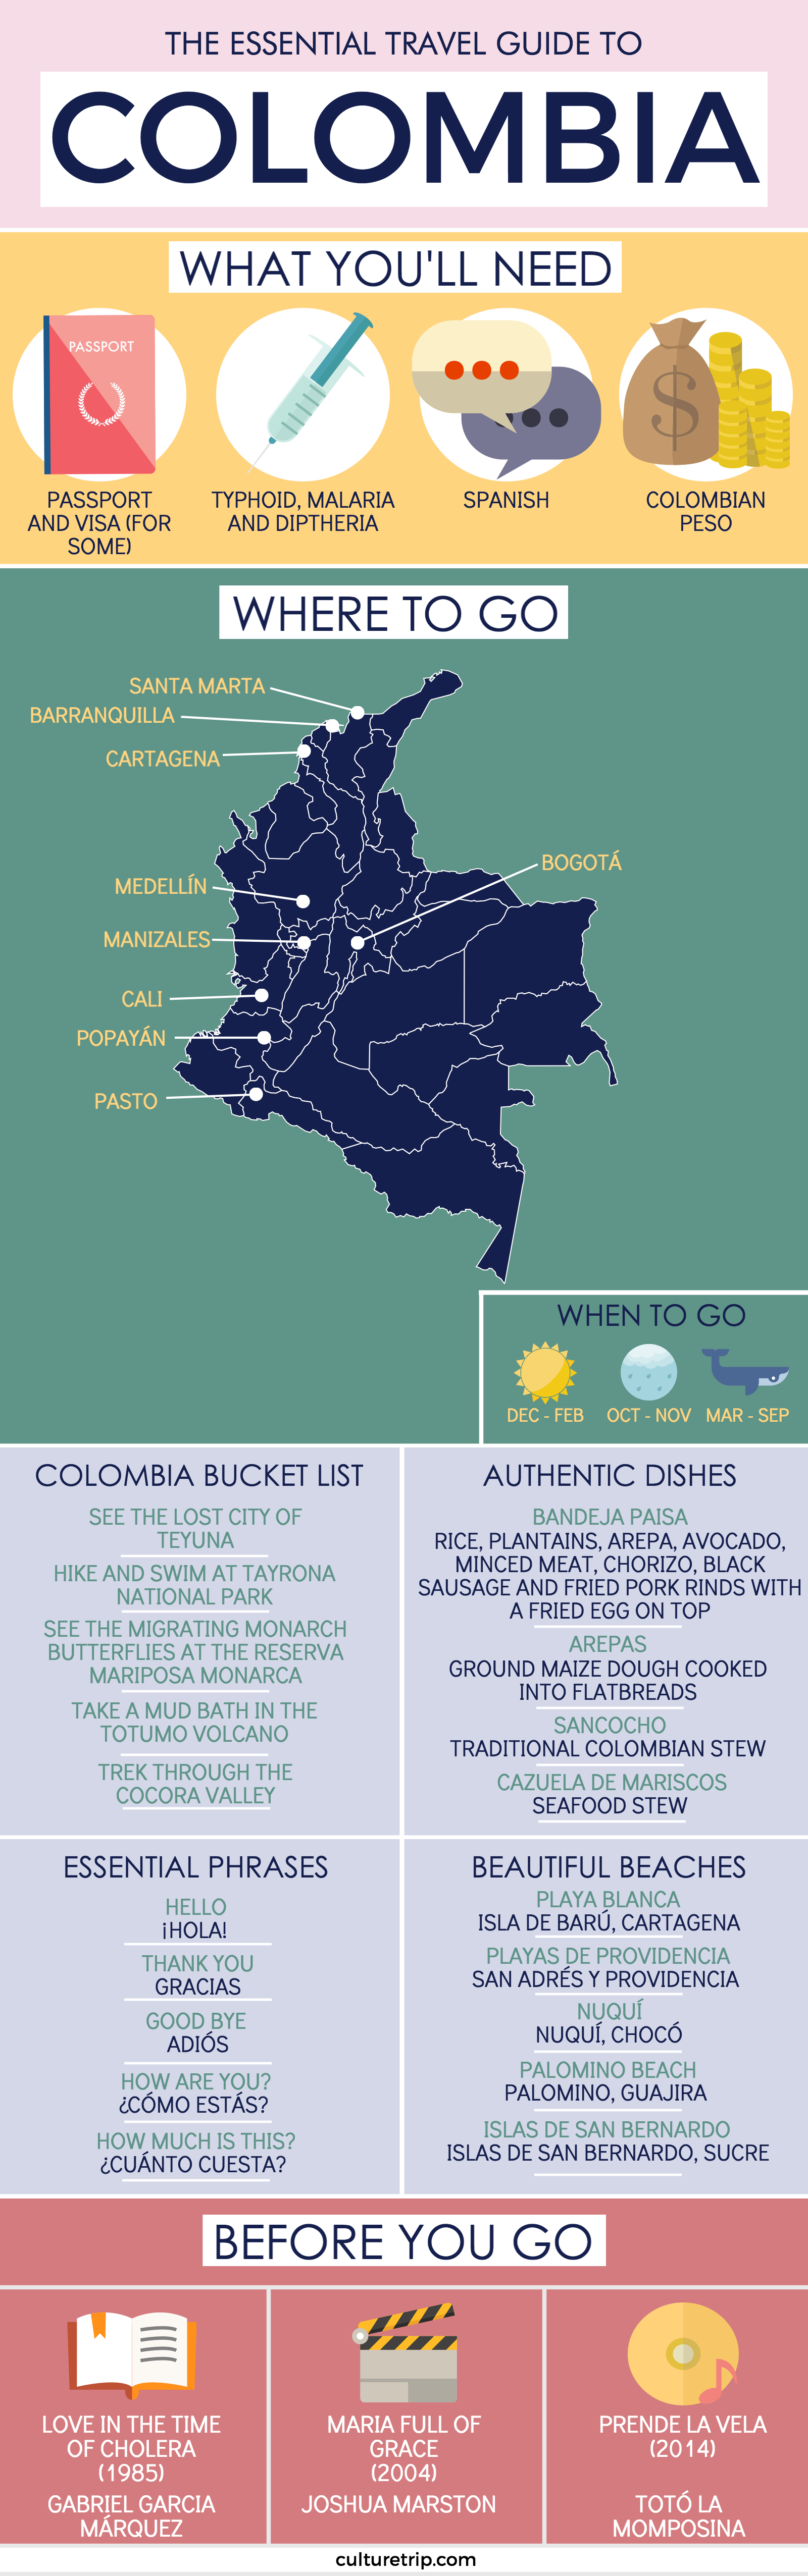 Colombia Atlas Maps And Online Resources Infopleasecom South - Us travel safety map